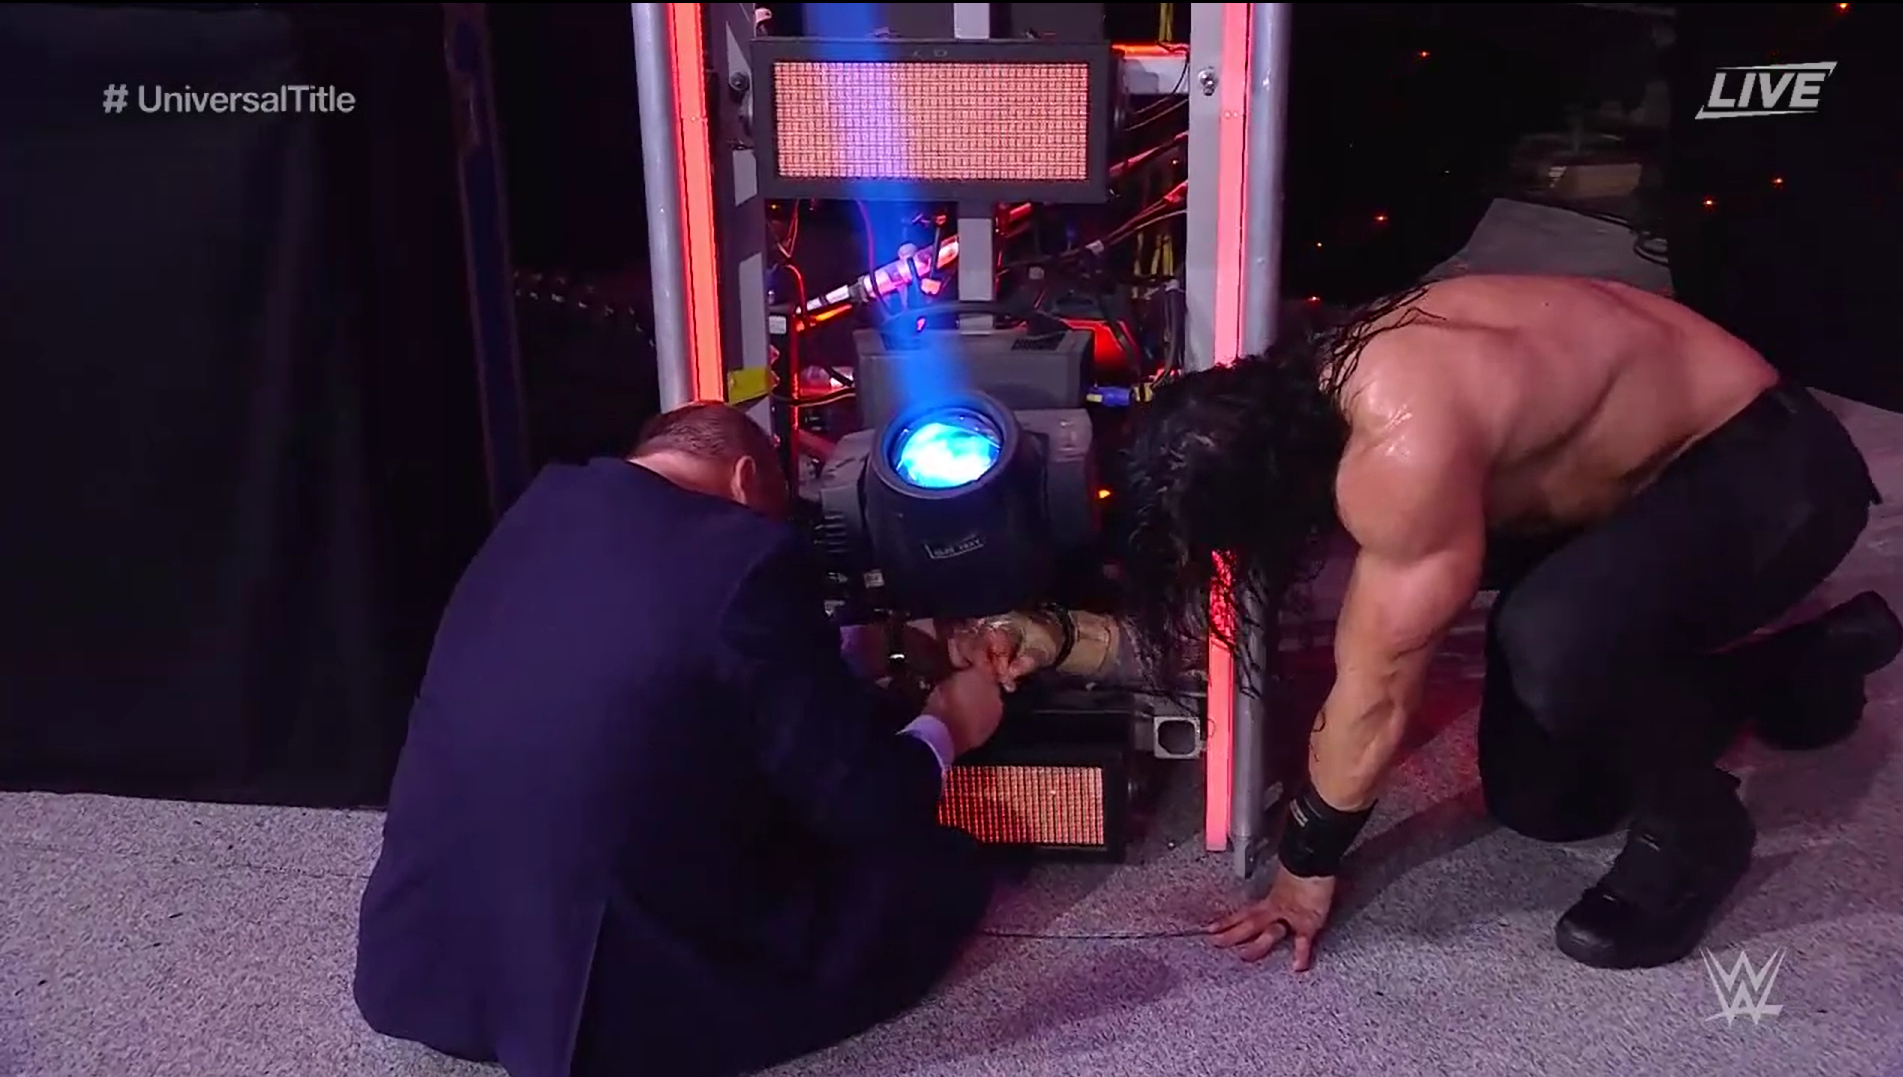 Roman Reigns and Paul Heyman struggle with handcuffs at the Royal Rumble